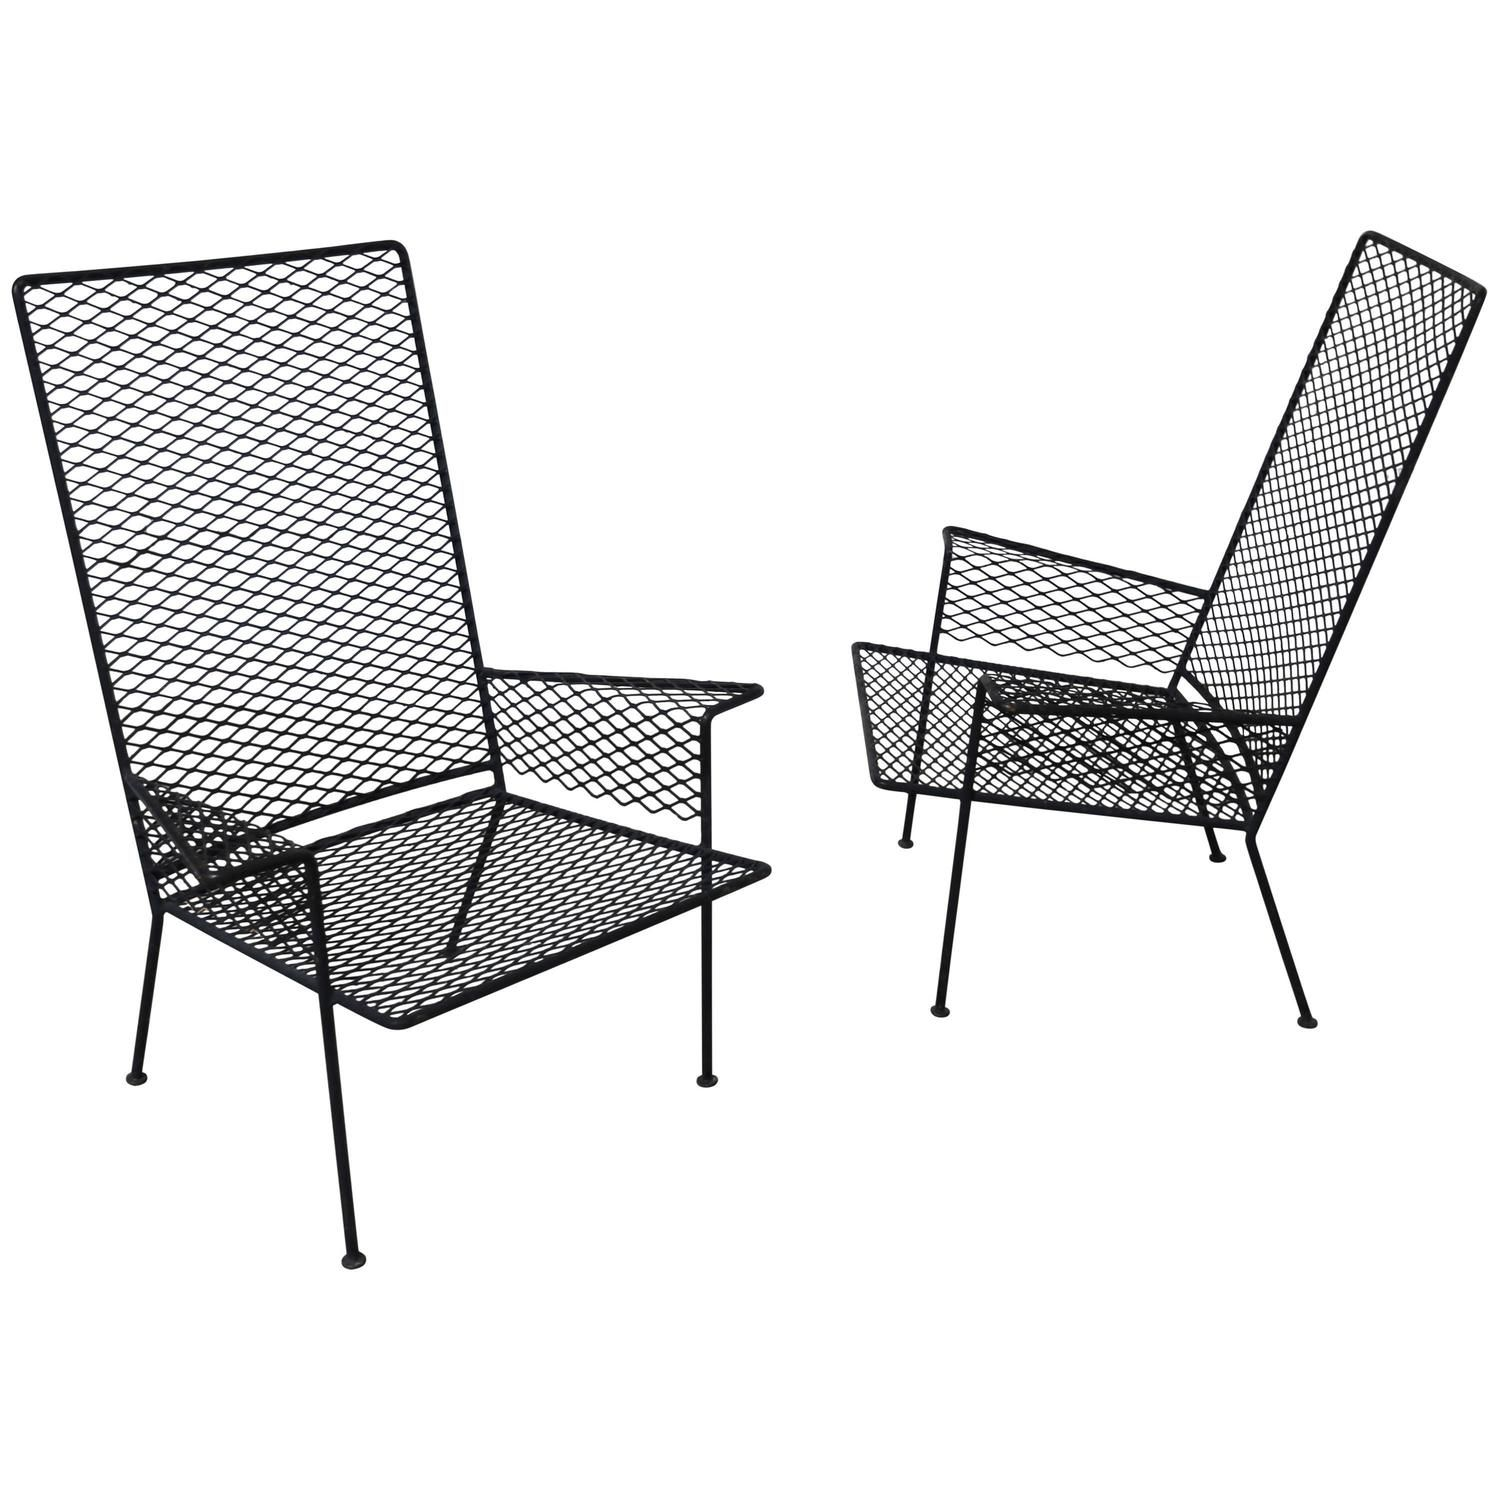 Outdoor Patio Chair Expanded Metal Mesh Availability Build to